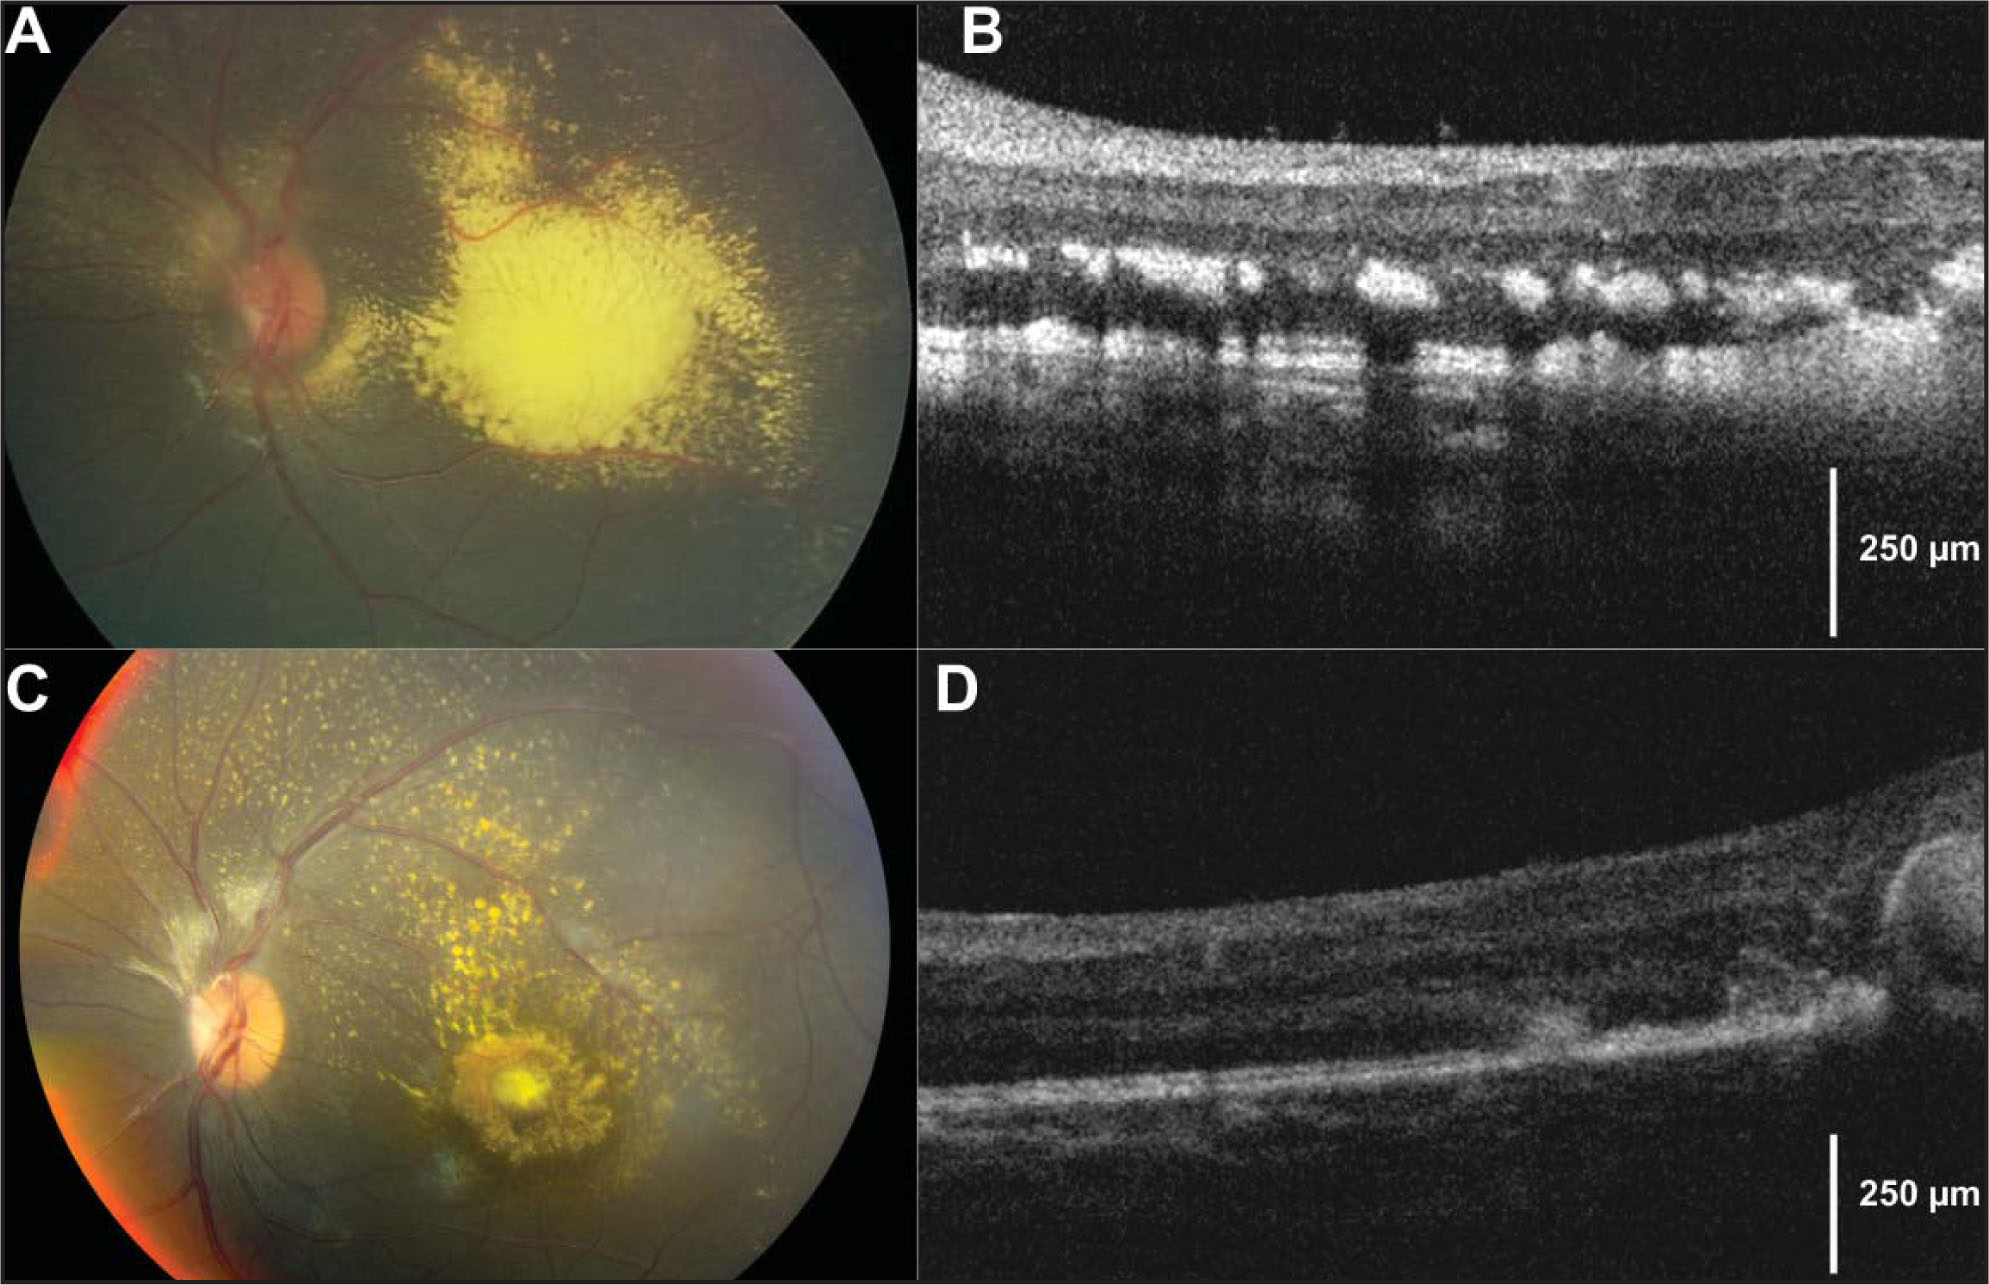 (A) Retcam (Clarity Medical Systems, Pleasonton, CA) photograph of the left eye demonstrating subretinal exudation at baseline examination. (B) Baseline intraoperative spectral-domain optical coherence tomography revealed subretinal exudation and extensive intraretinal exudates at the level of the outer plexiform layer that creates a shadowing effect. Central macular thickness was measured to be 397 microns. (C) Retcam photograph of the left eye demonstrating reduced exudation following 1 year of treatment. (D) Spectral-domain optical coherence tomography of the left eye demonstrating reduction in subretinal and intraretinal exudation following treatment with intravitreal bevacizumab and indirect diode laser vascular ablation. Central macular thickness improved to 348 microns, but a prominent area of consolidated exudate, encompassing nearly all retinal layers, did not resolve.